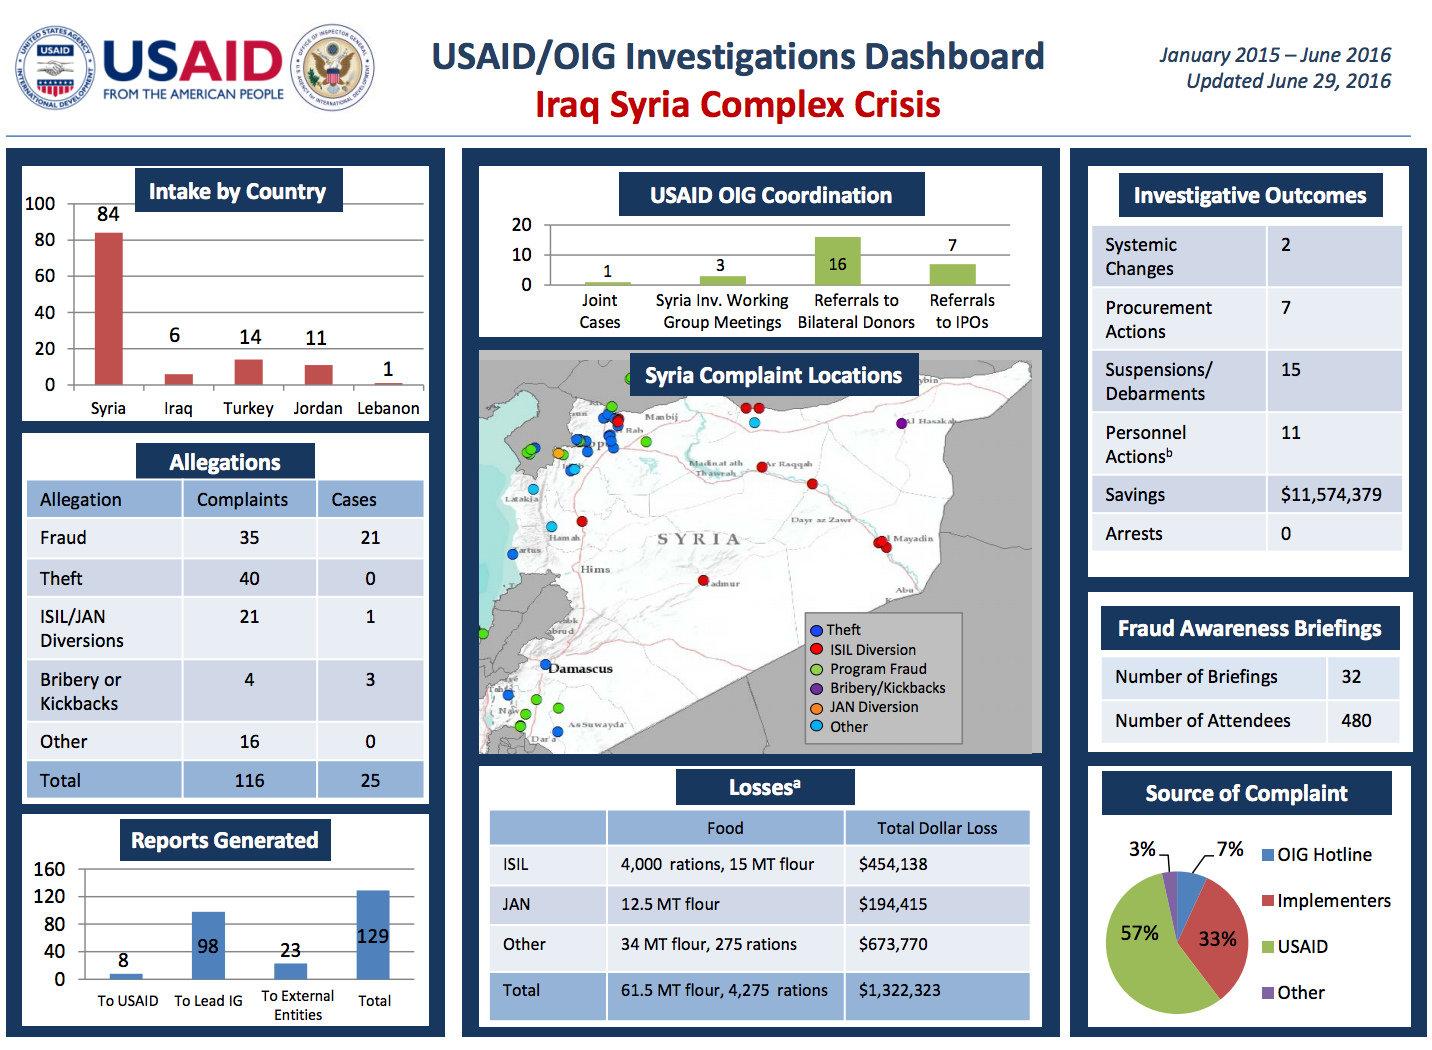 USAID has a dashboard tracking the multiple corruption cases among aid operations in Syria and Turkey